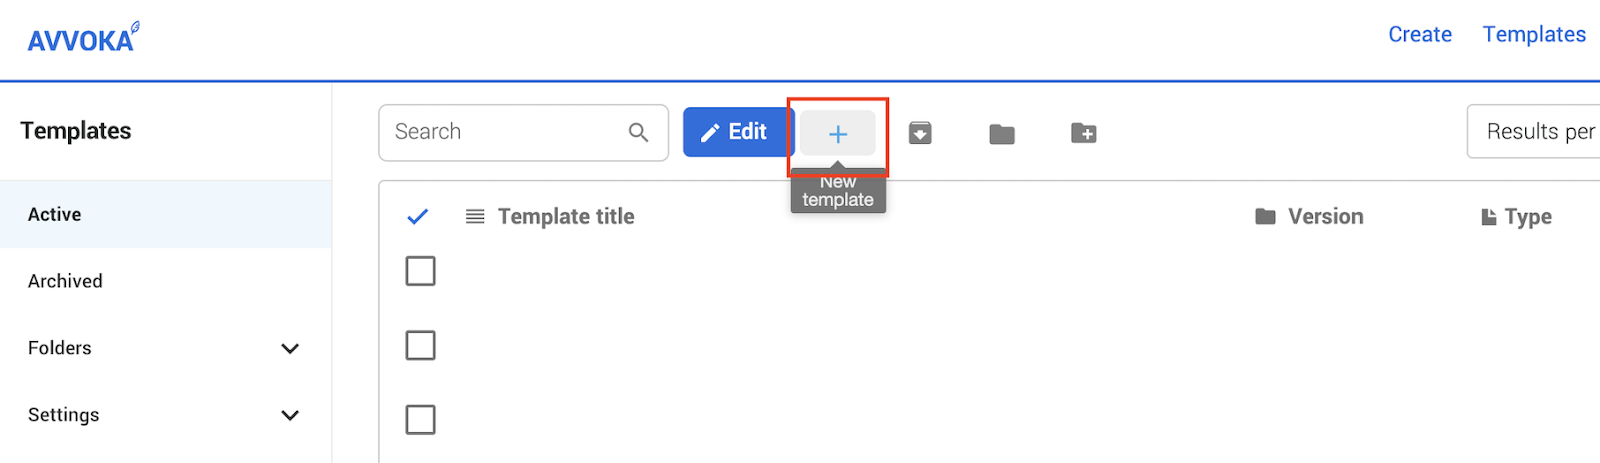 Create a new template from the templates screen